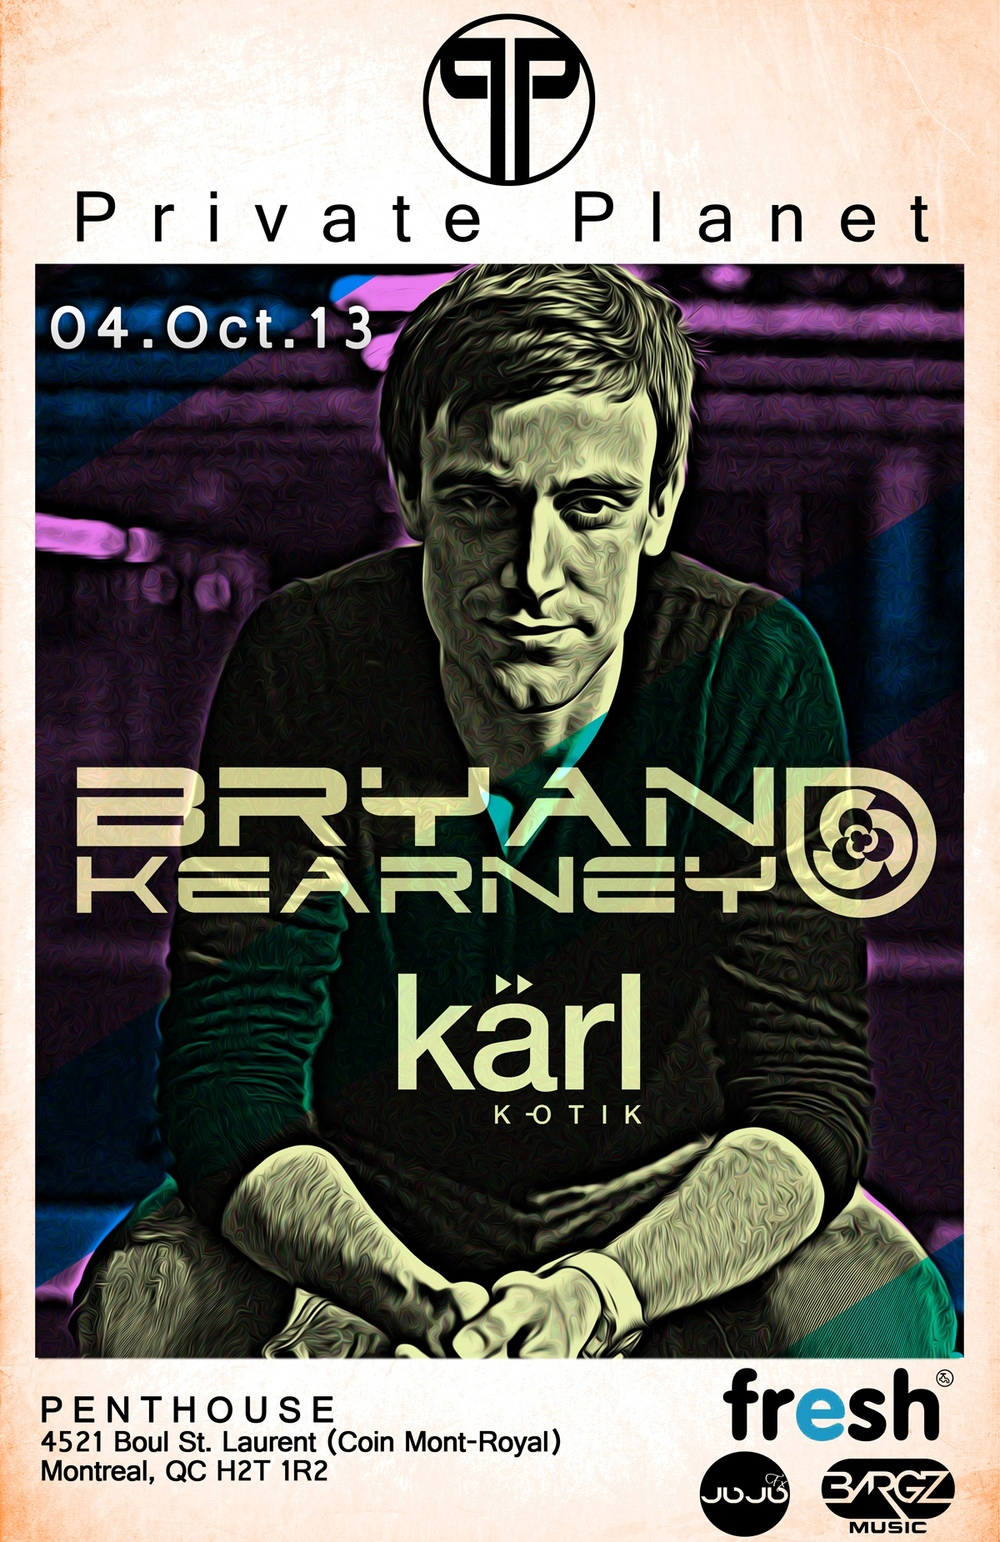 Bryan Kearney at the Penthouse in Montreal